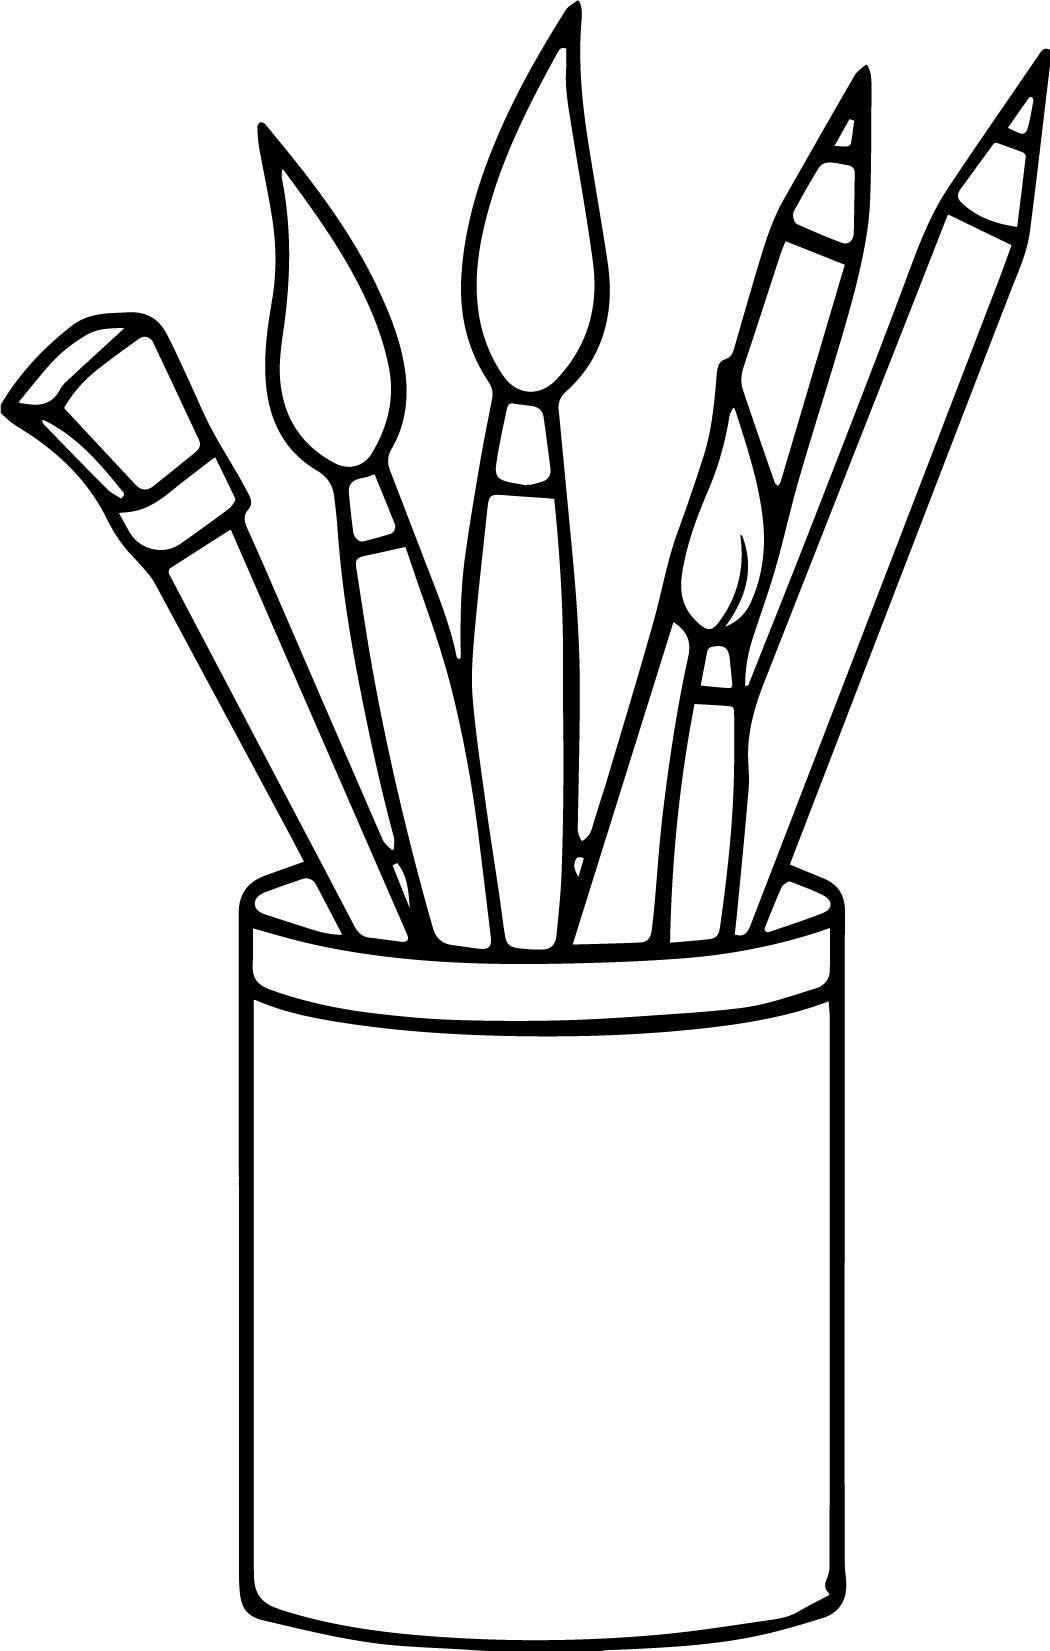 Art Supplies Clipart Black And White.